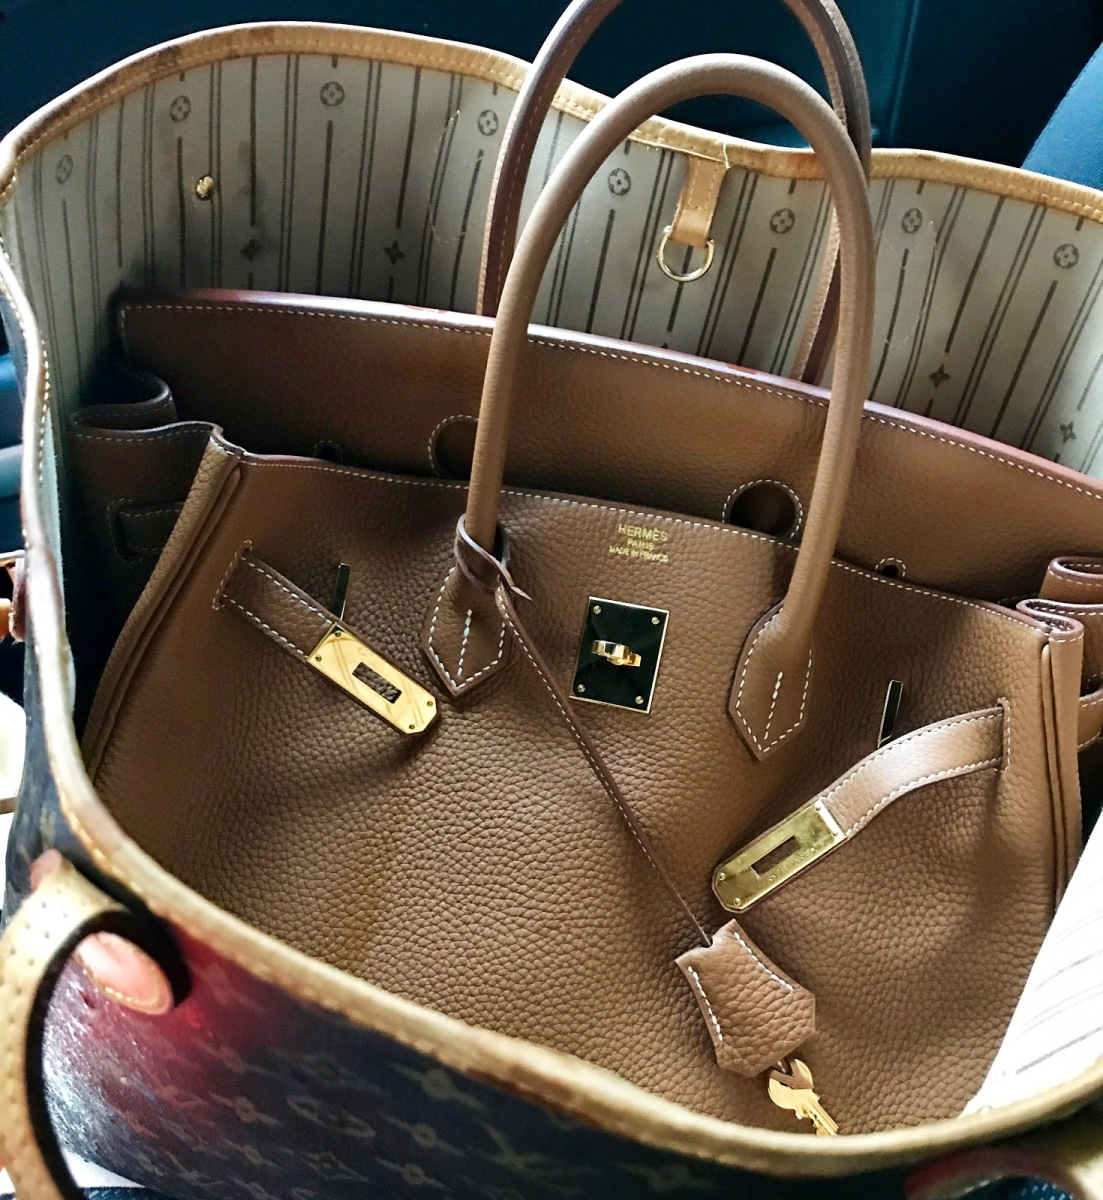 Oh my god - a new Birkin Bag in the house